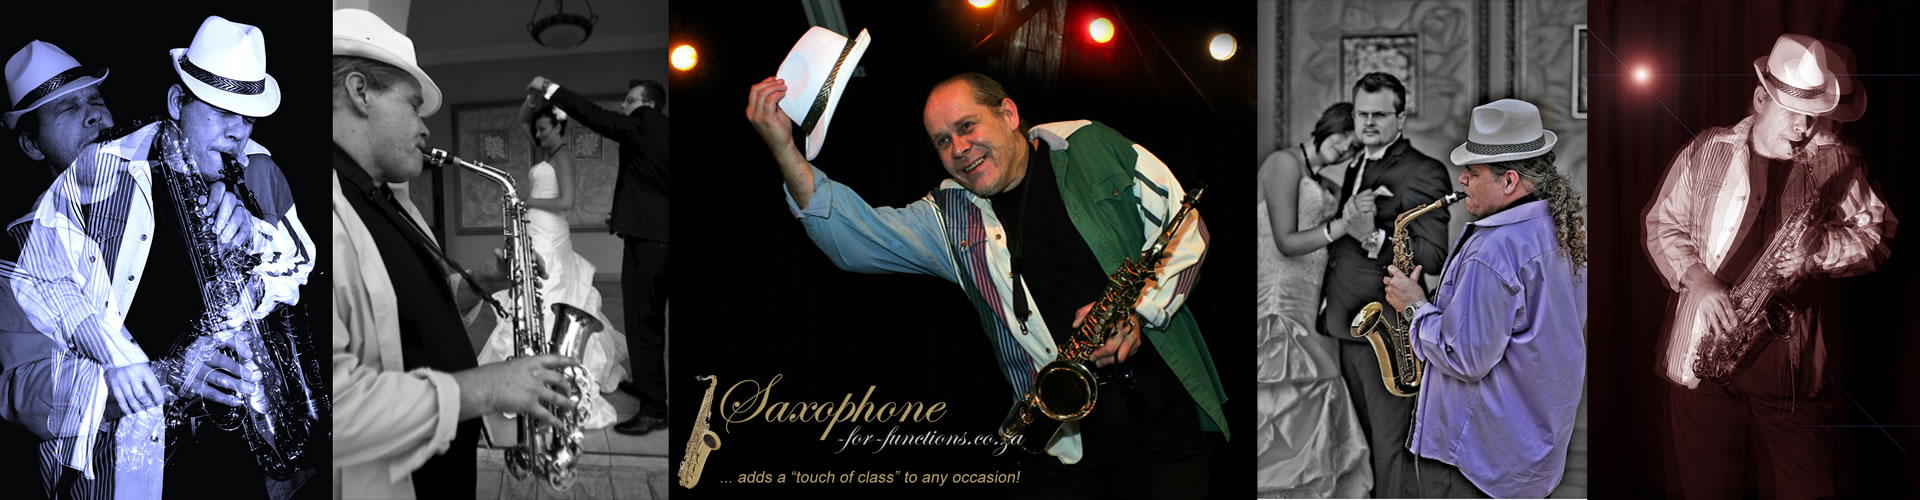 Saxophone For Weddings Slider 6